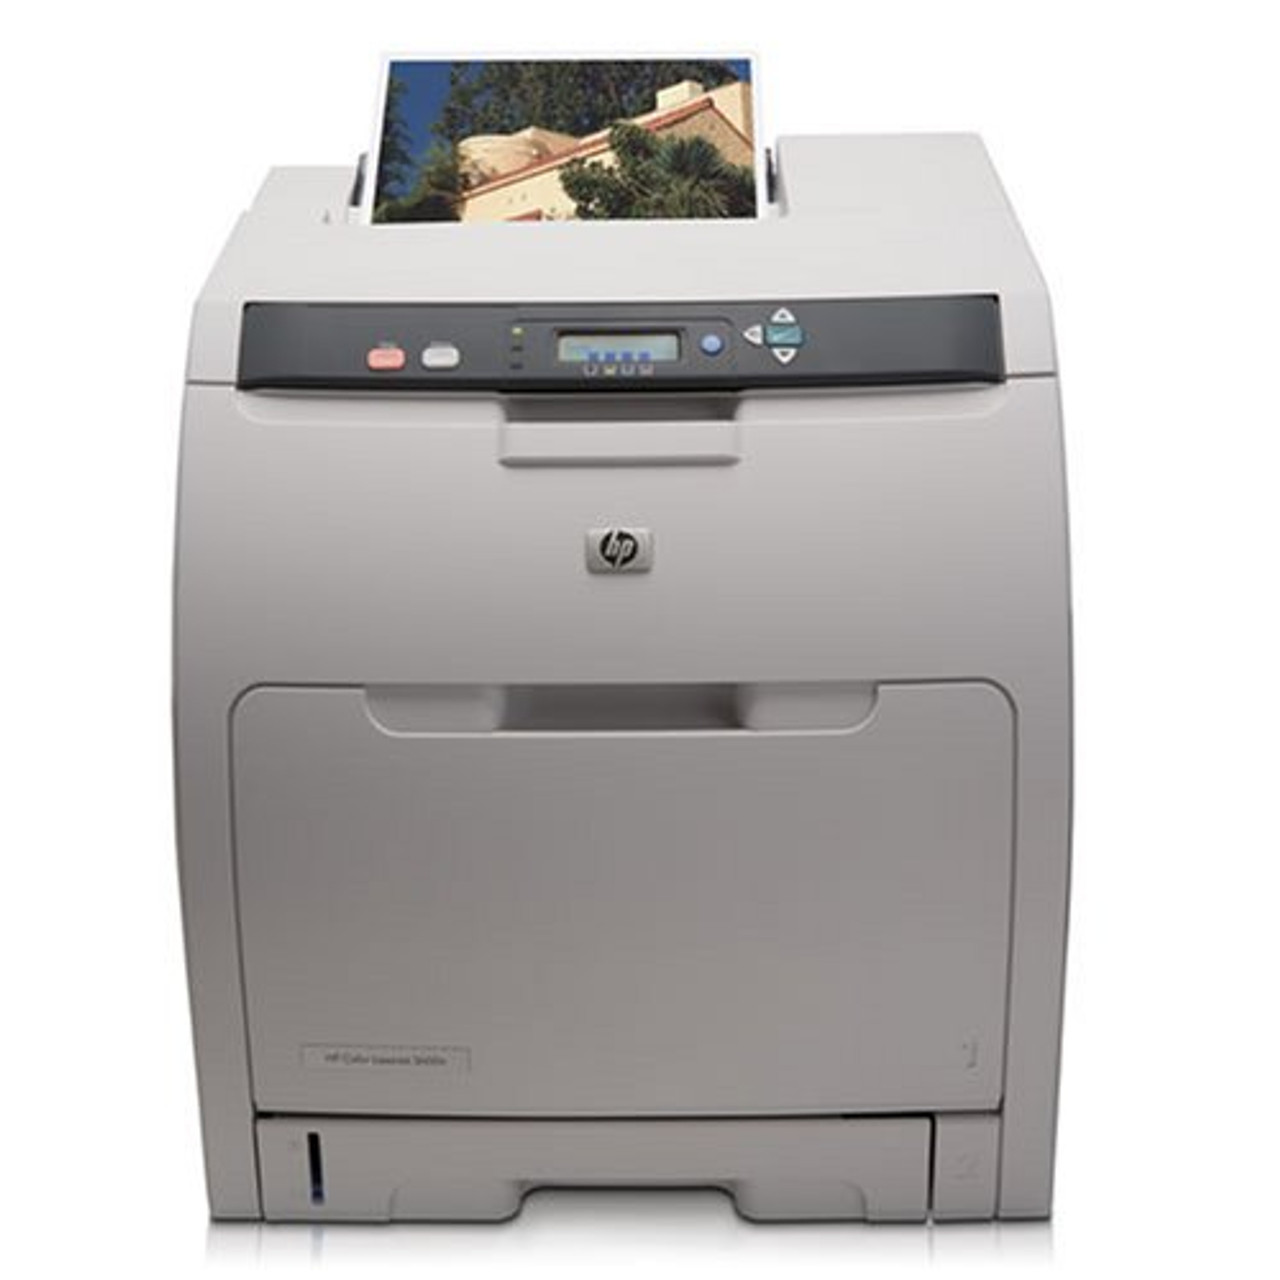 HP Color LaserJet 3600DN - Q5988A - HP Laser Printer for sale